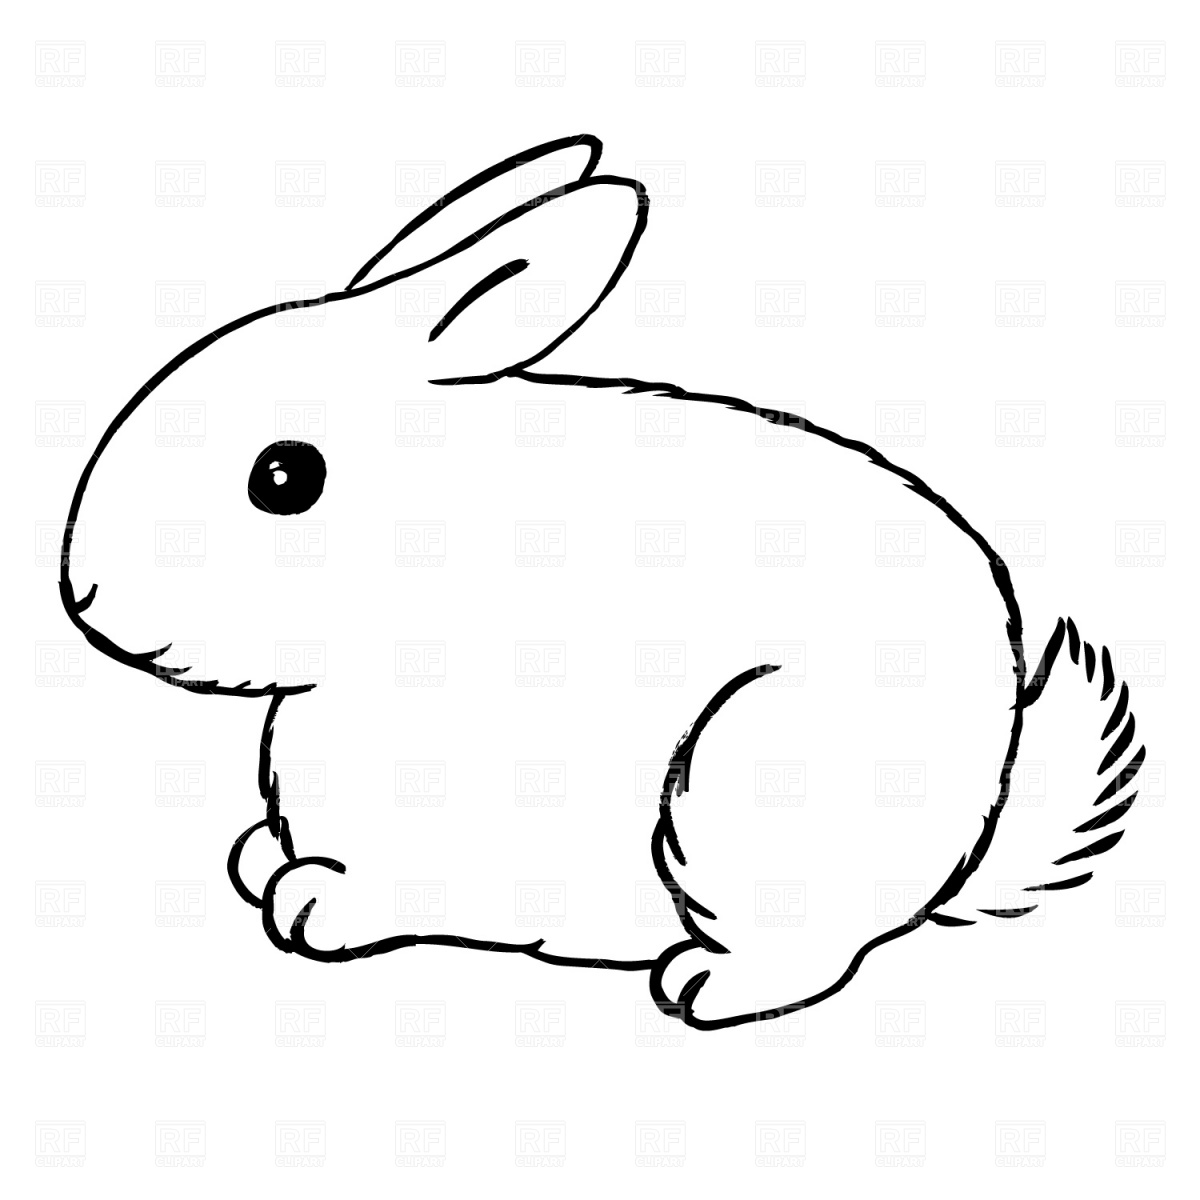 1200x1200 Bunny Vector Image Vector Artwork Of Plants And Animals Prague